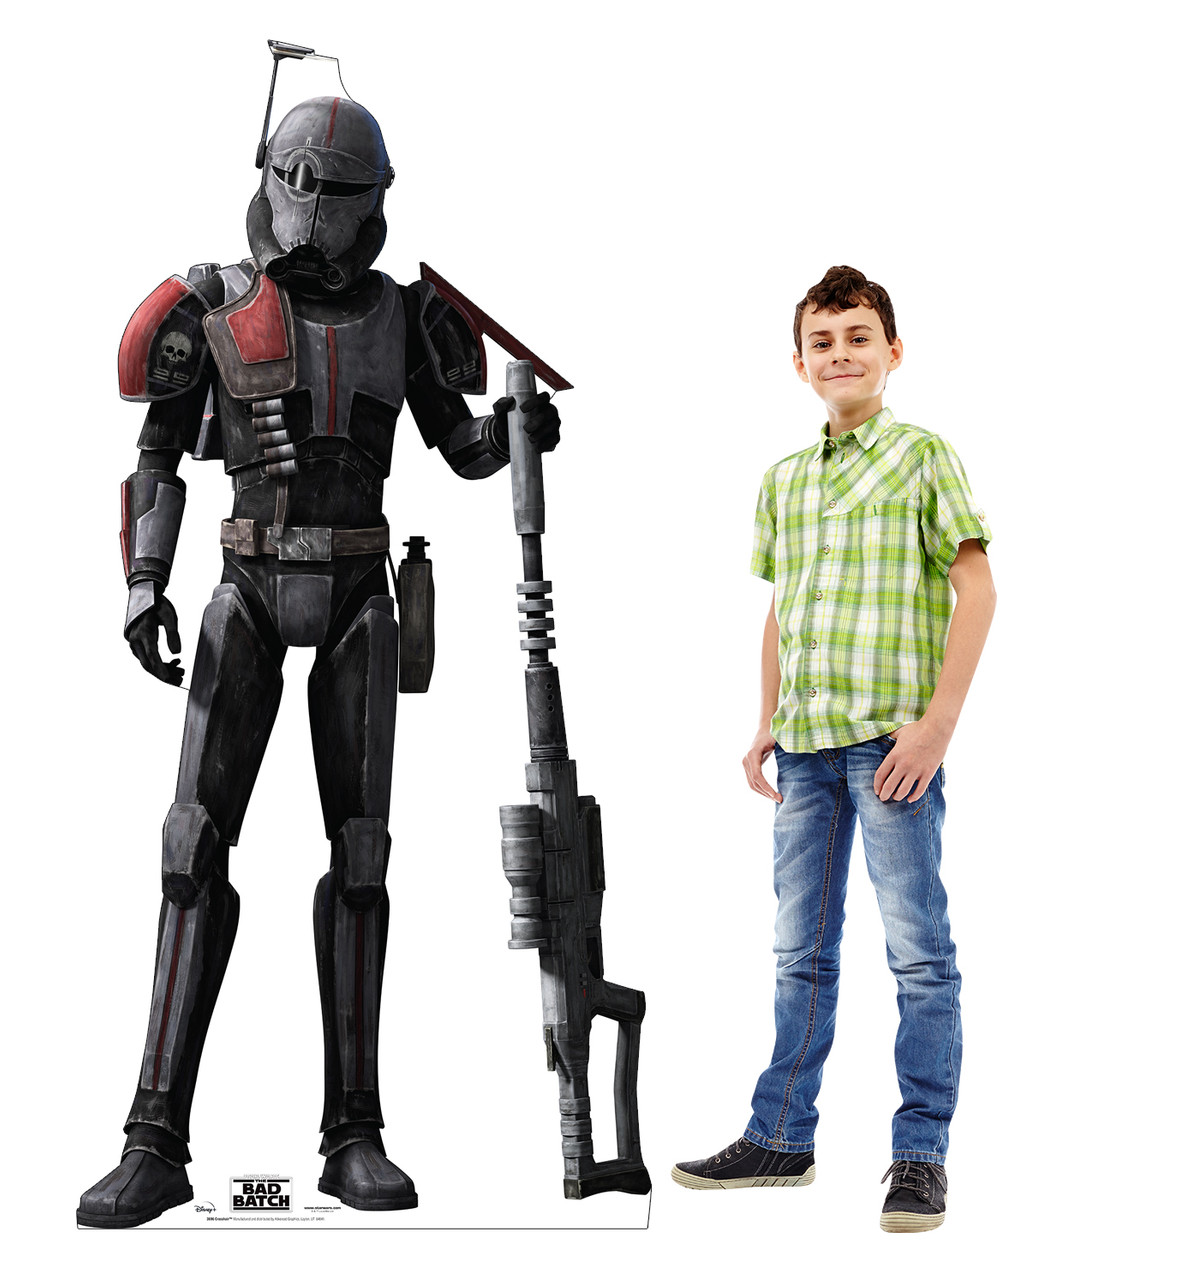 Life-size cardboard standee of Crosshair from The Bad Batch on Disney+ with model.